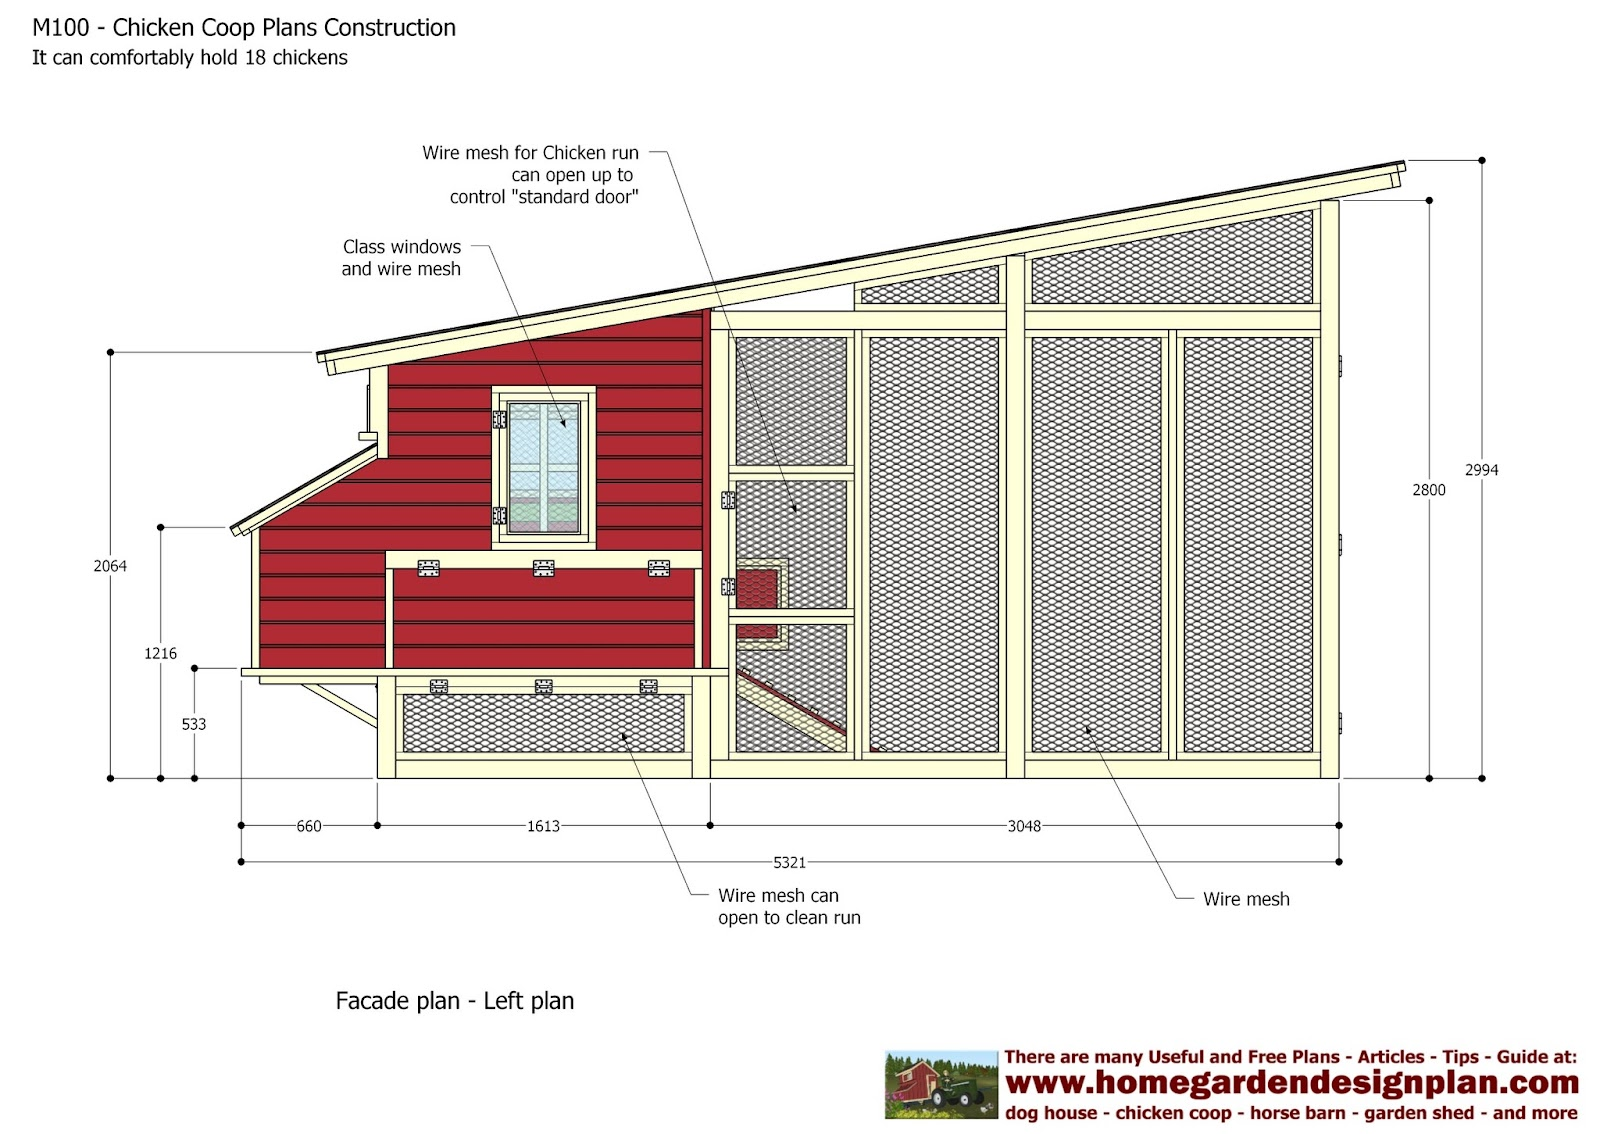 Home garden plans m100 chicken coop plans construction for How to build a chicken hutch